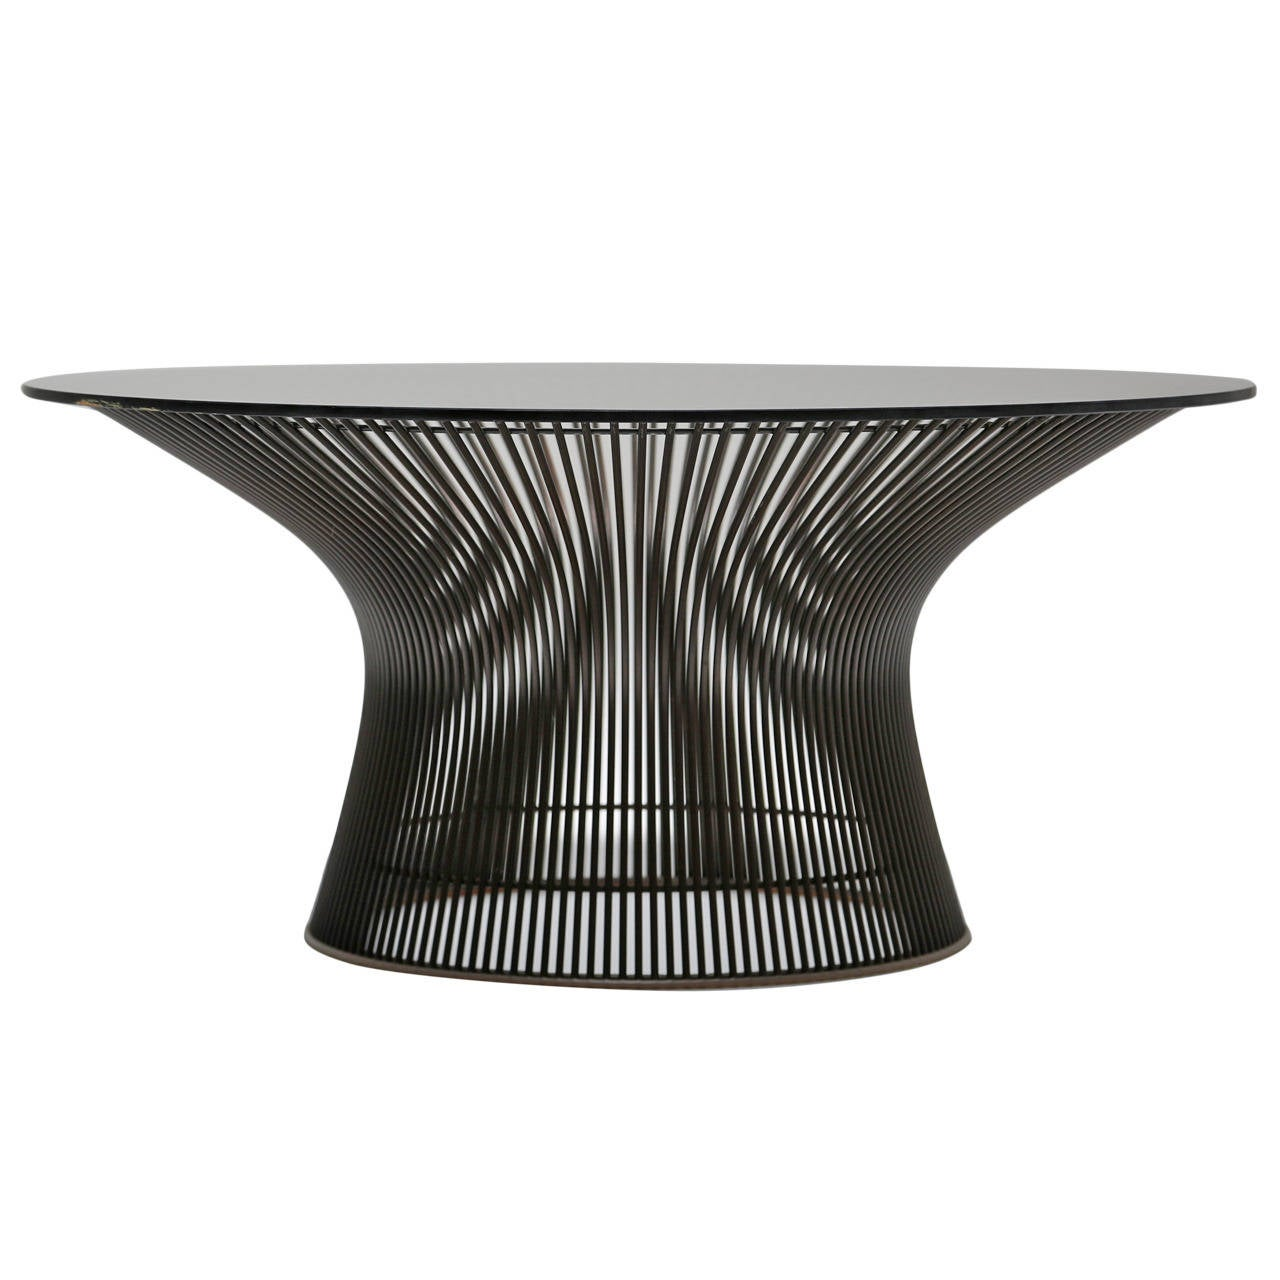 bronze warren platner coffee table for knoll international